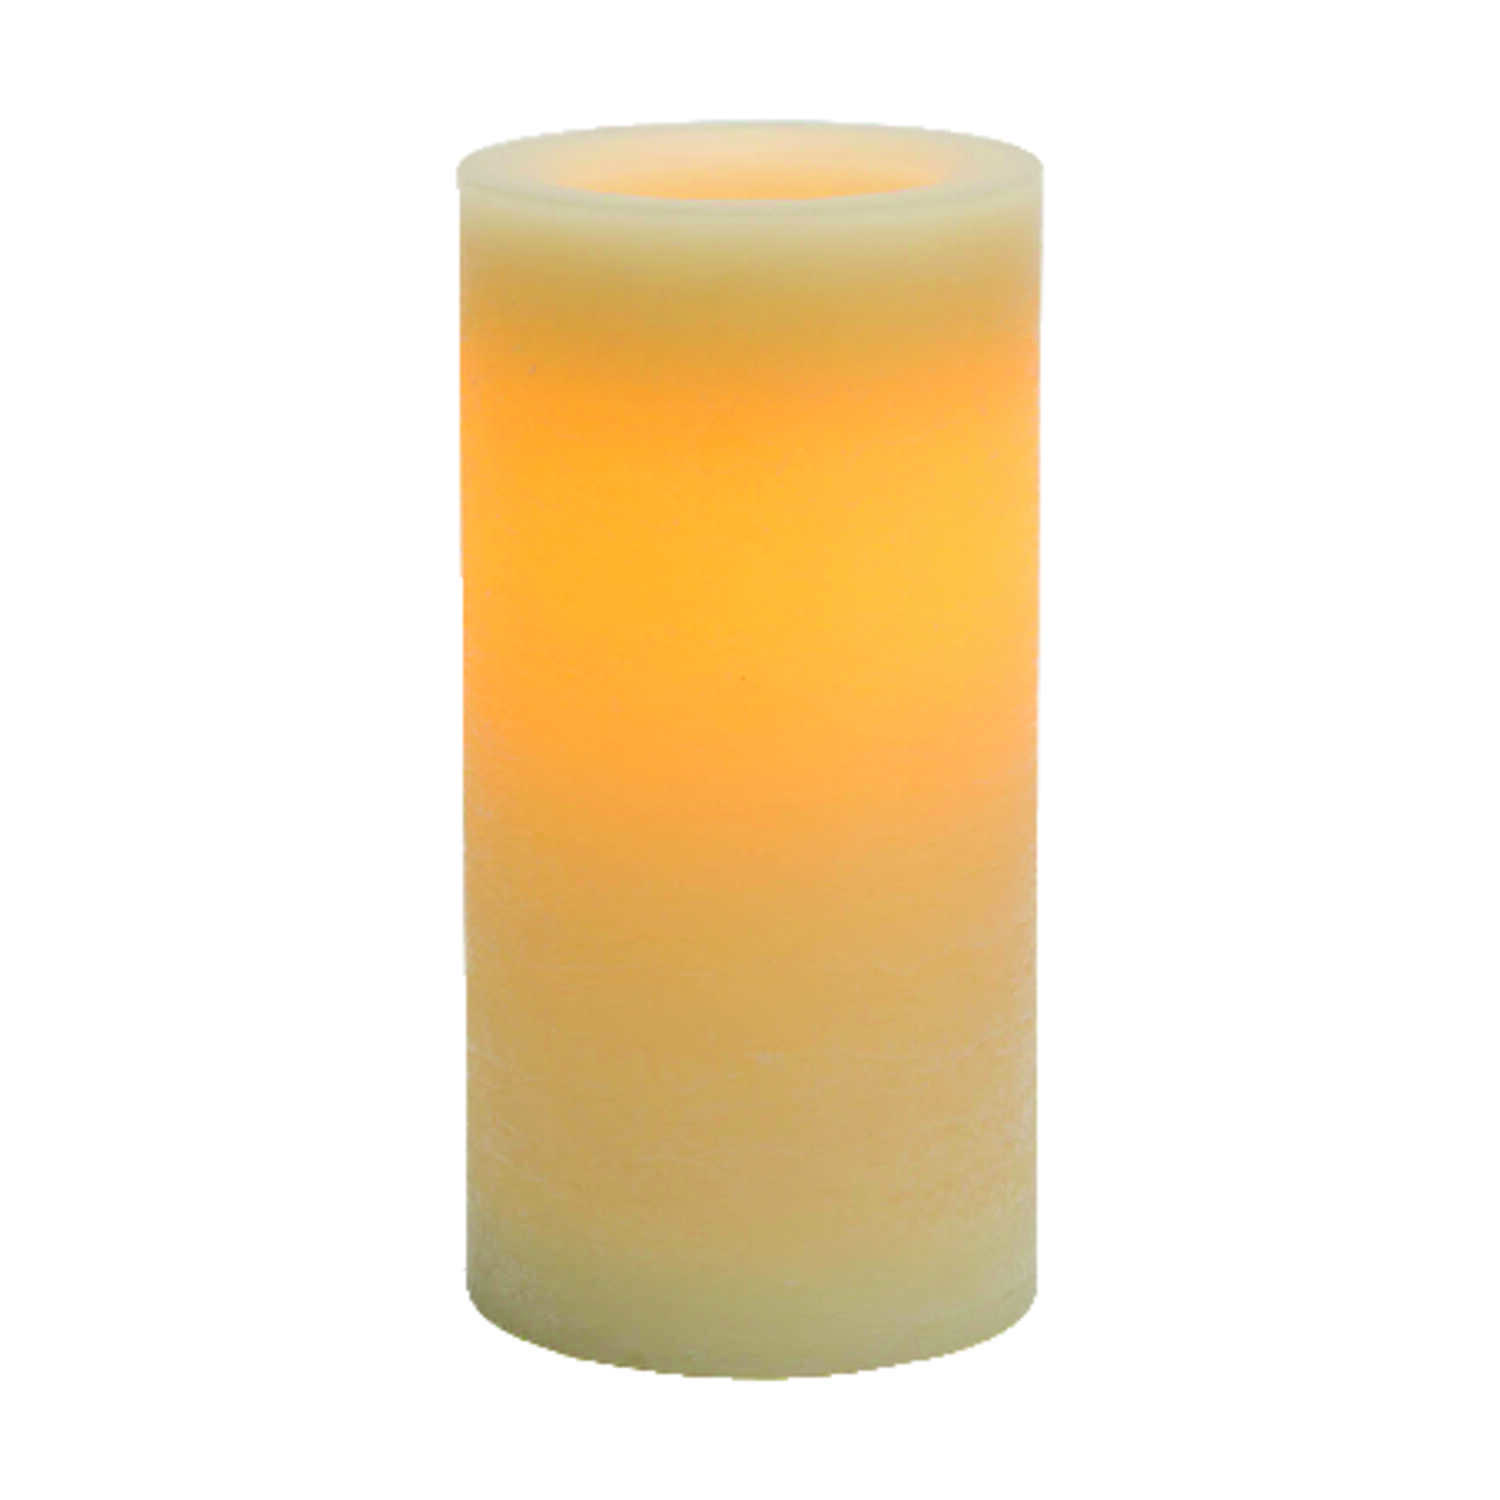 Inglow  Vanilla Scent Butter Cream  Candle  8 in. H x 4 in. Dia.